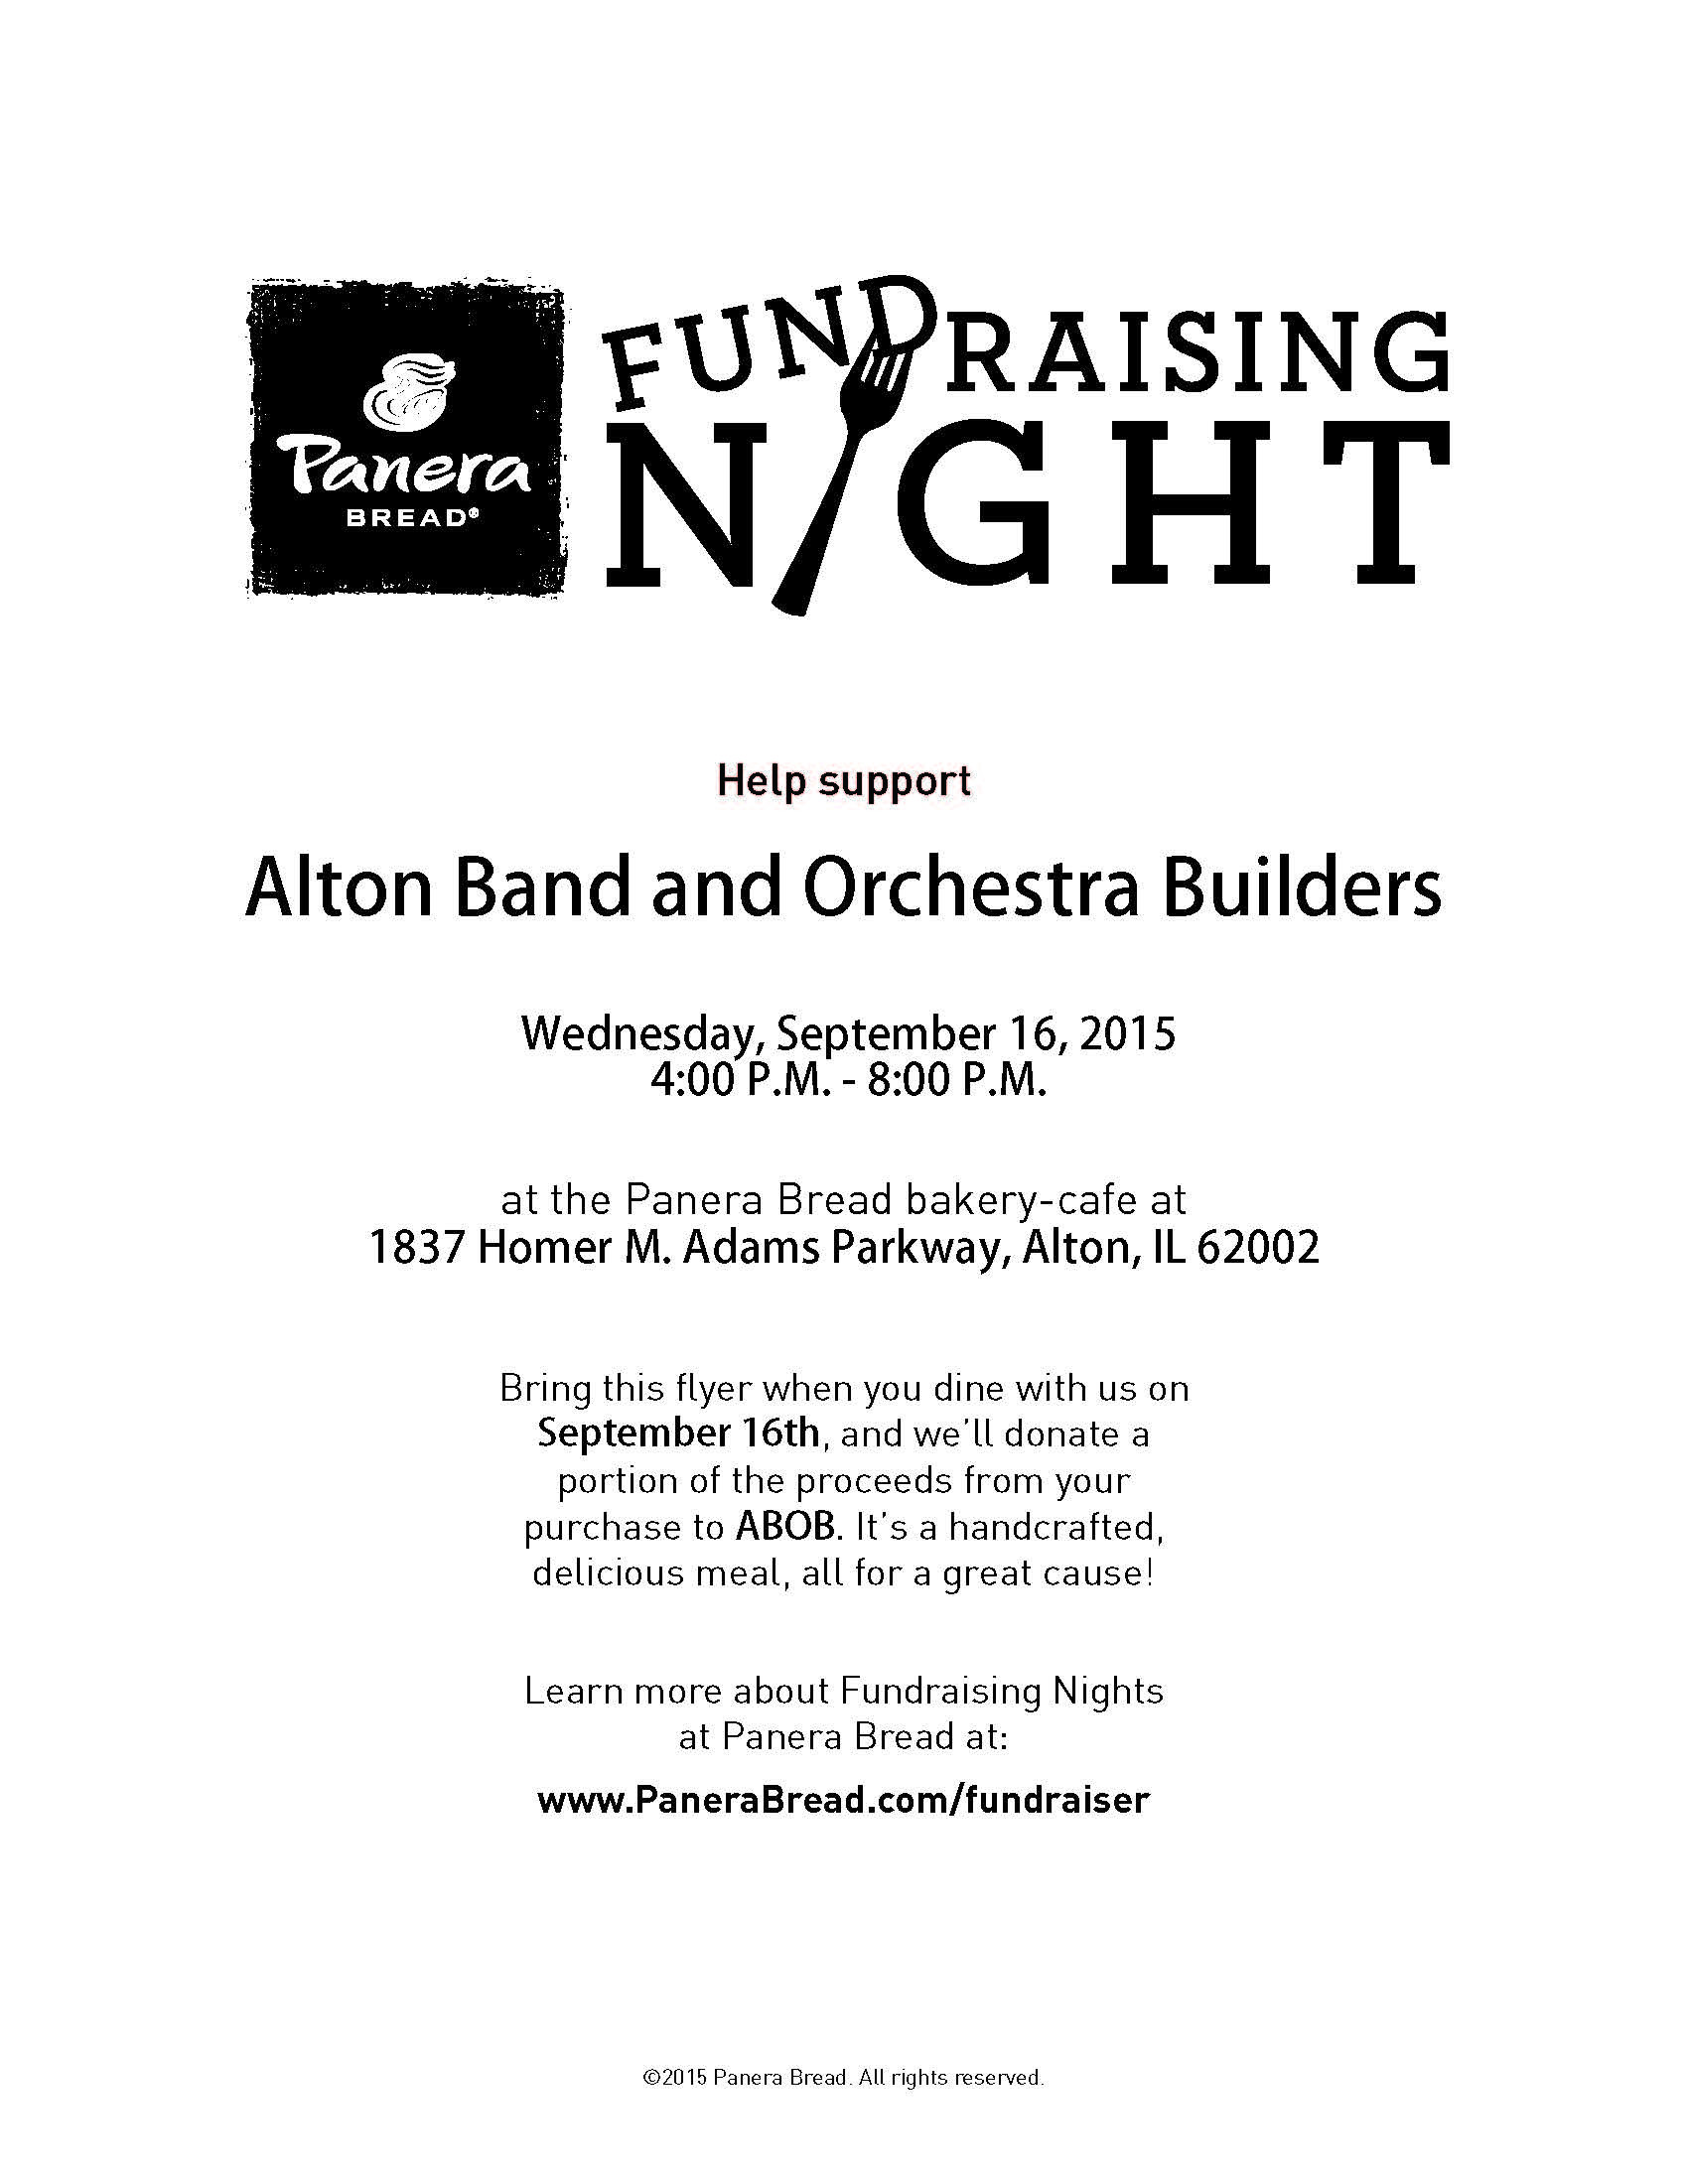 ABOB Fundraiser Night at St. Louis Bread Co. (Panera Bakery)